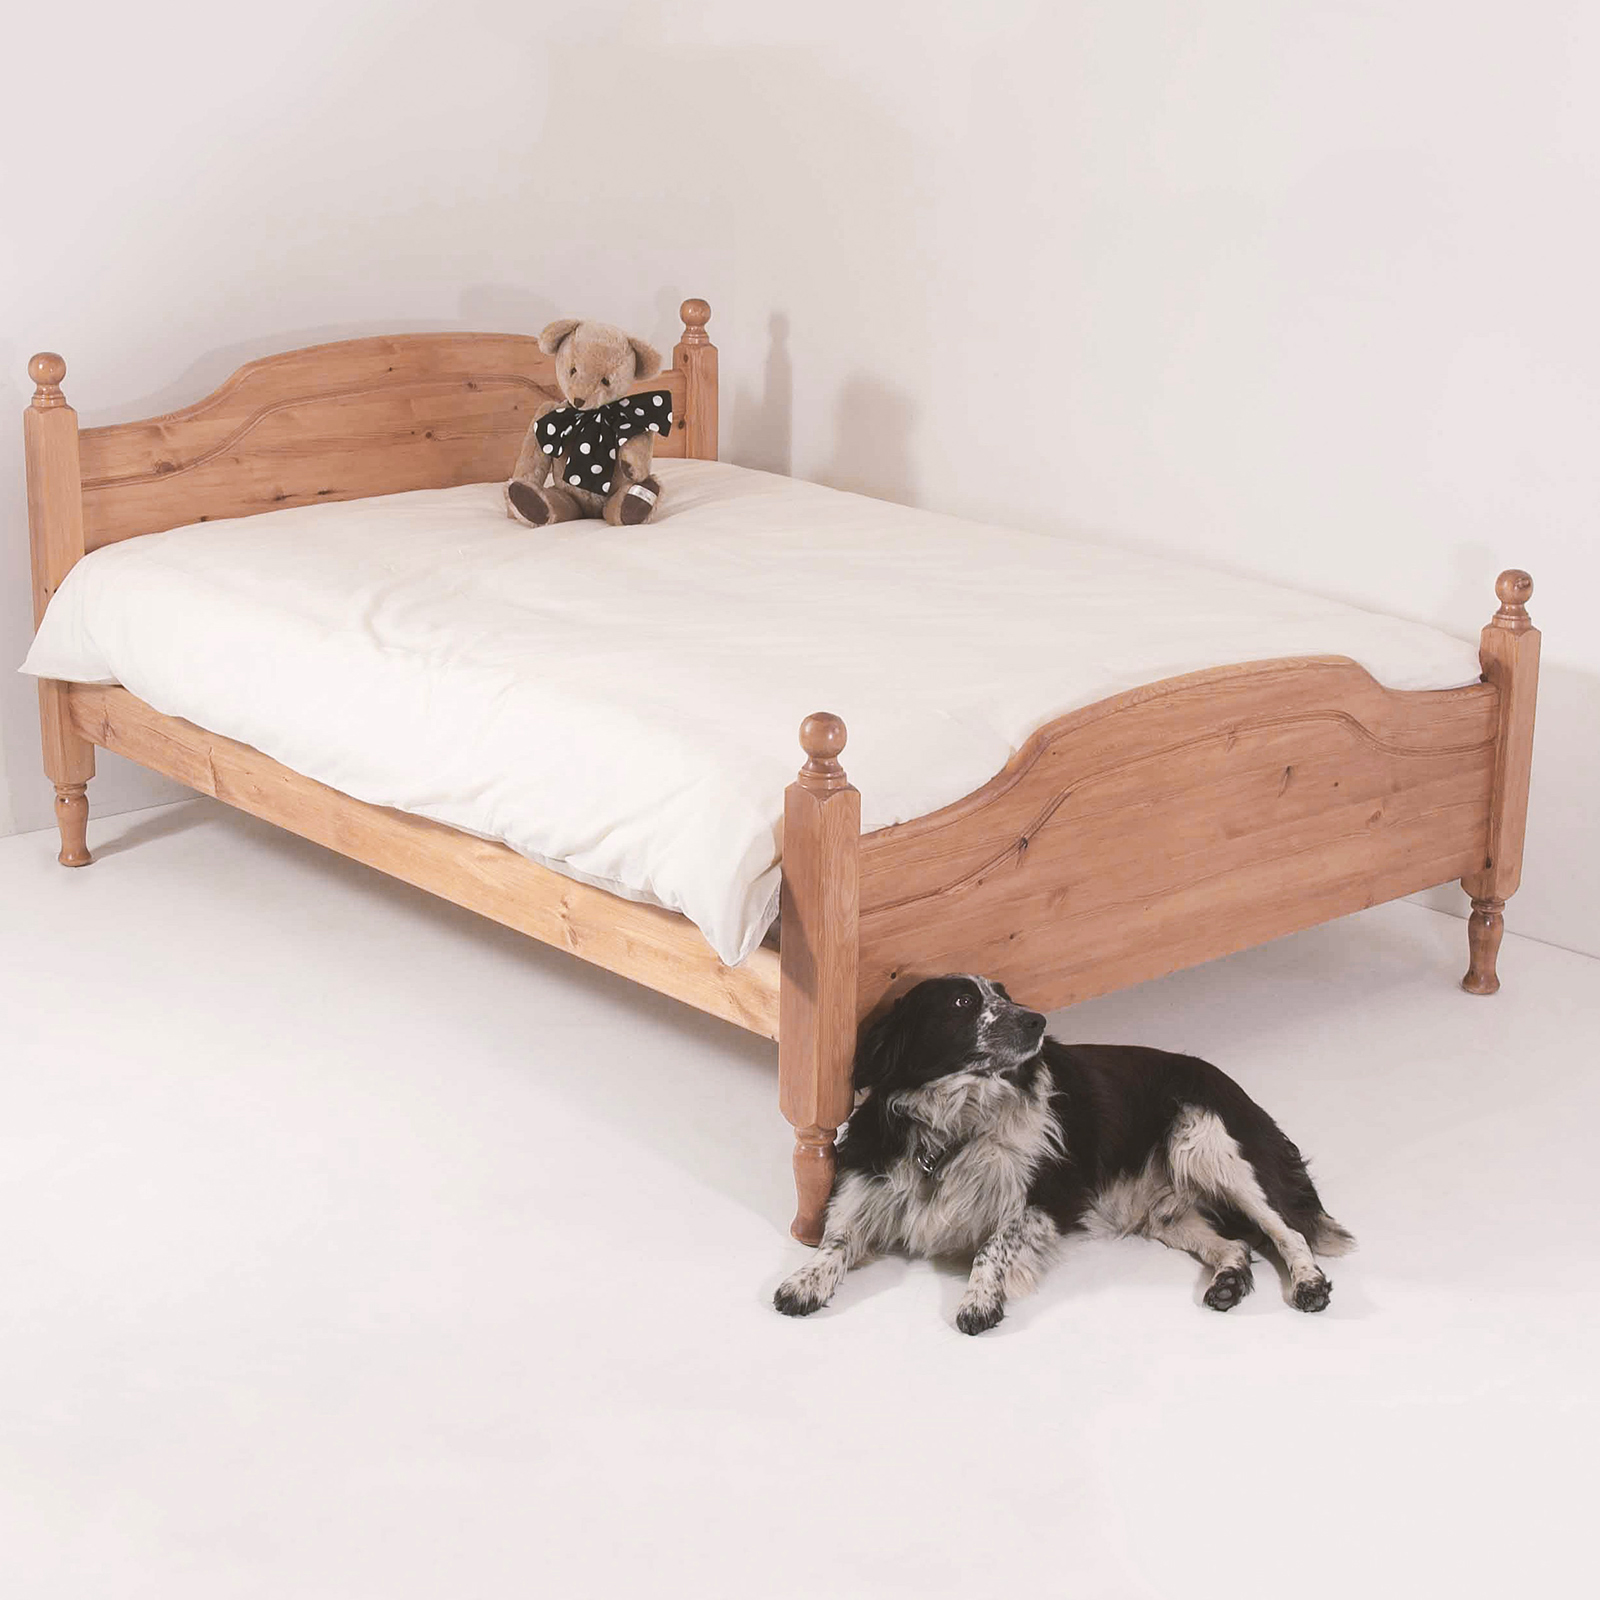 Realwoods Hilton Bed